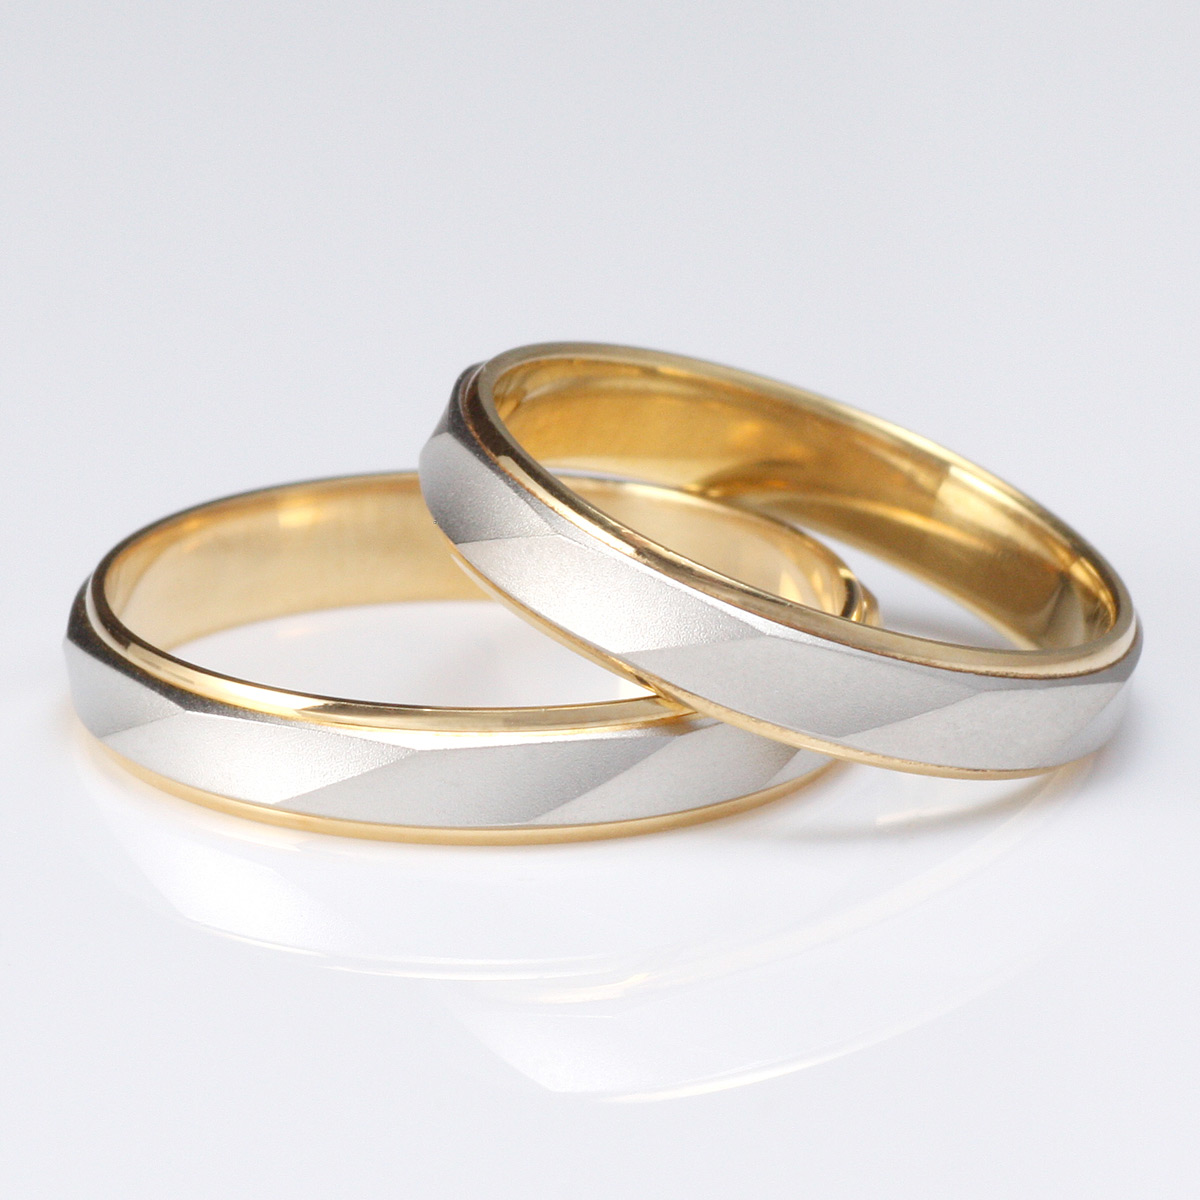 Jewelry SUEHIRO Wedding ring marriage ring pairing